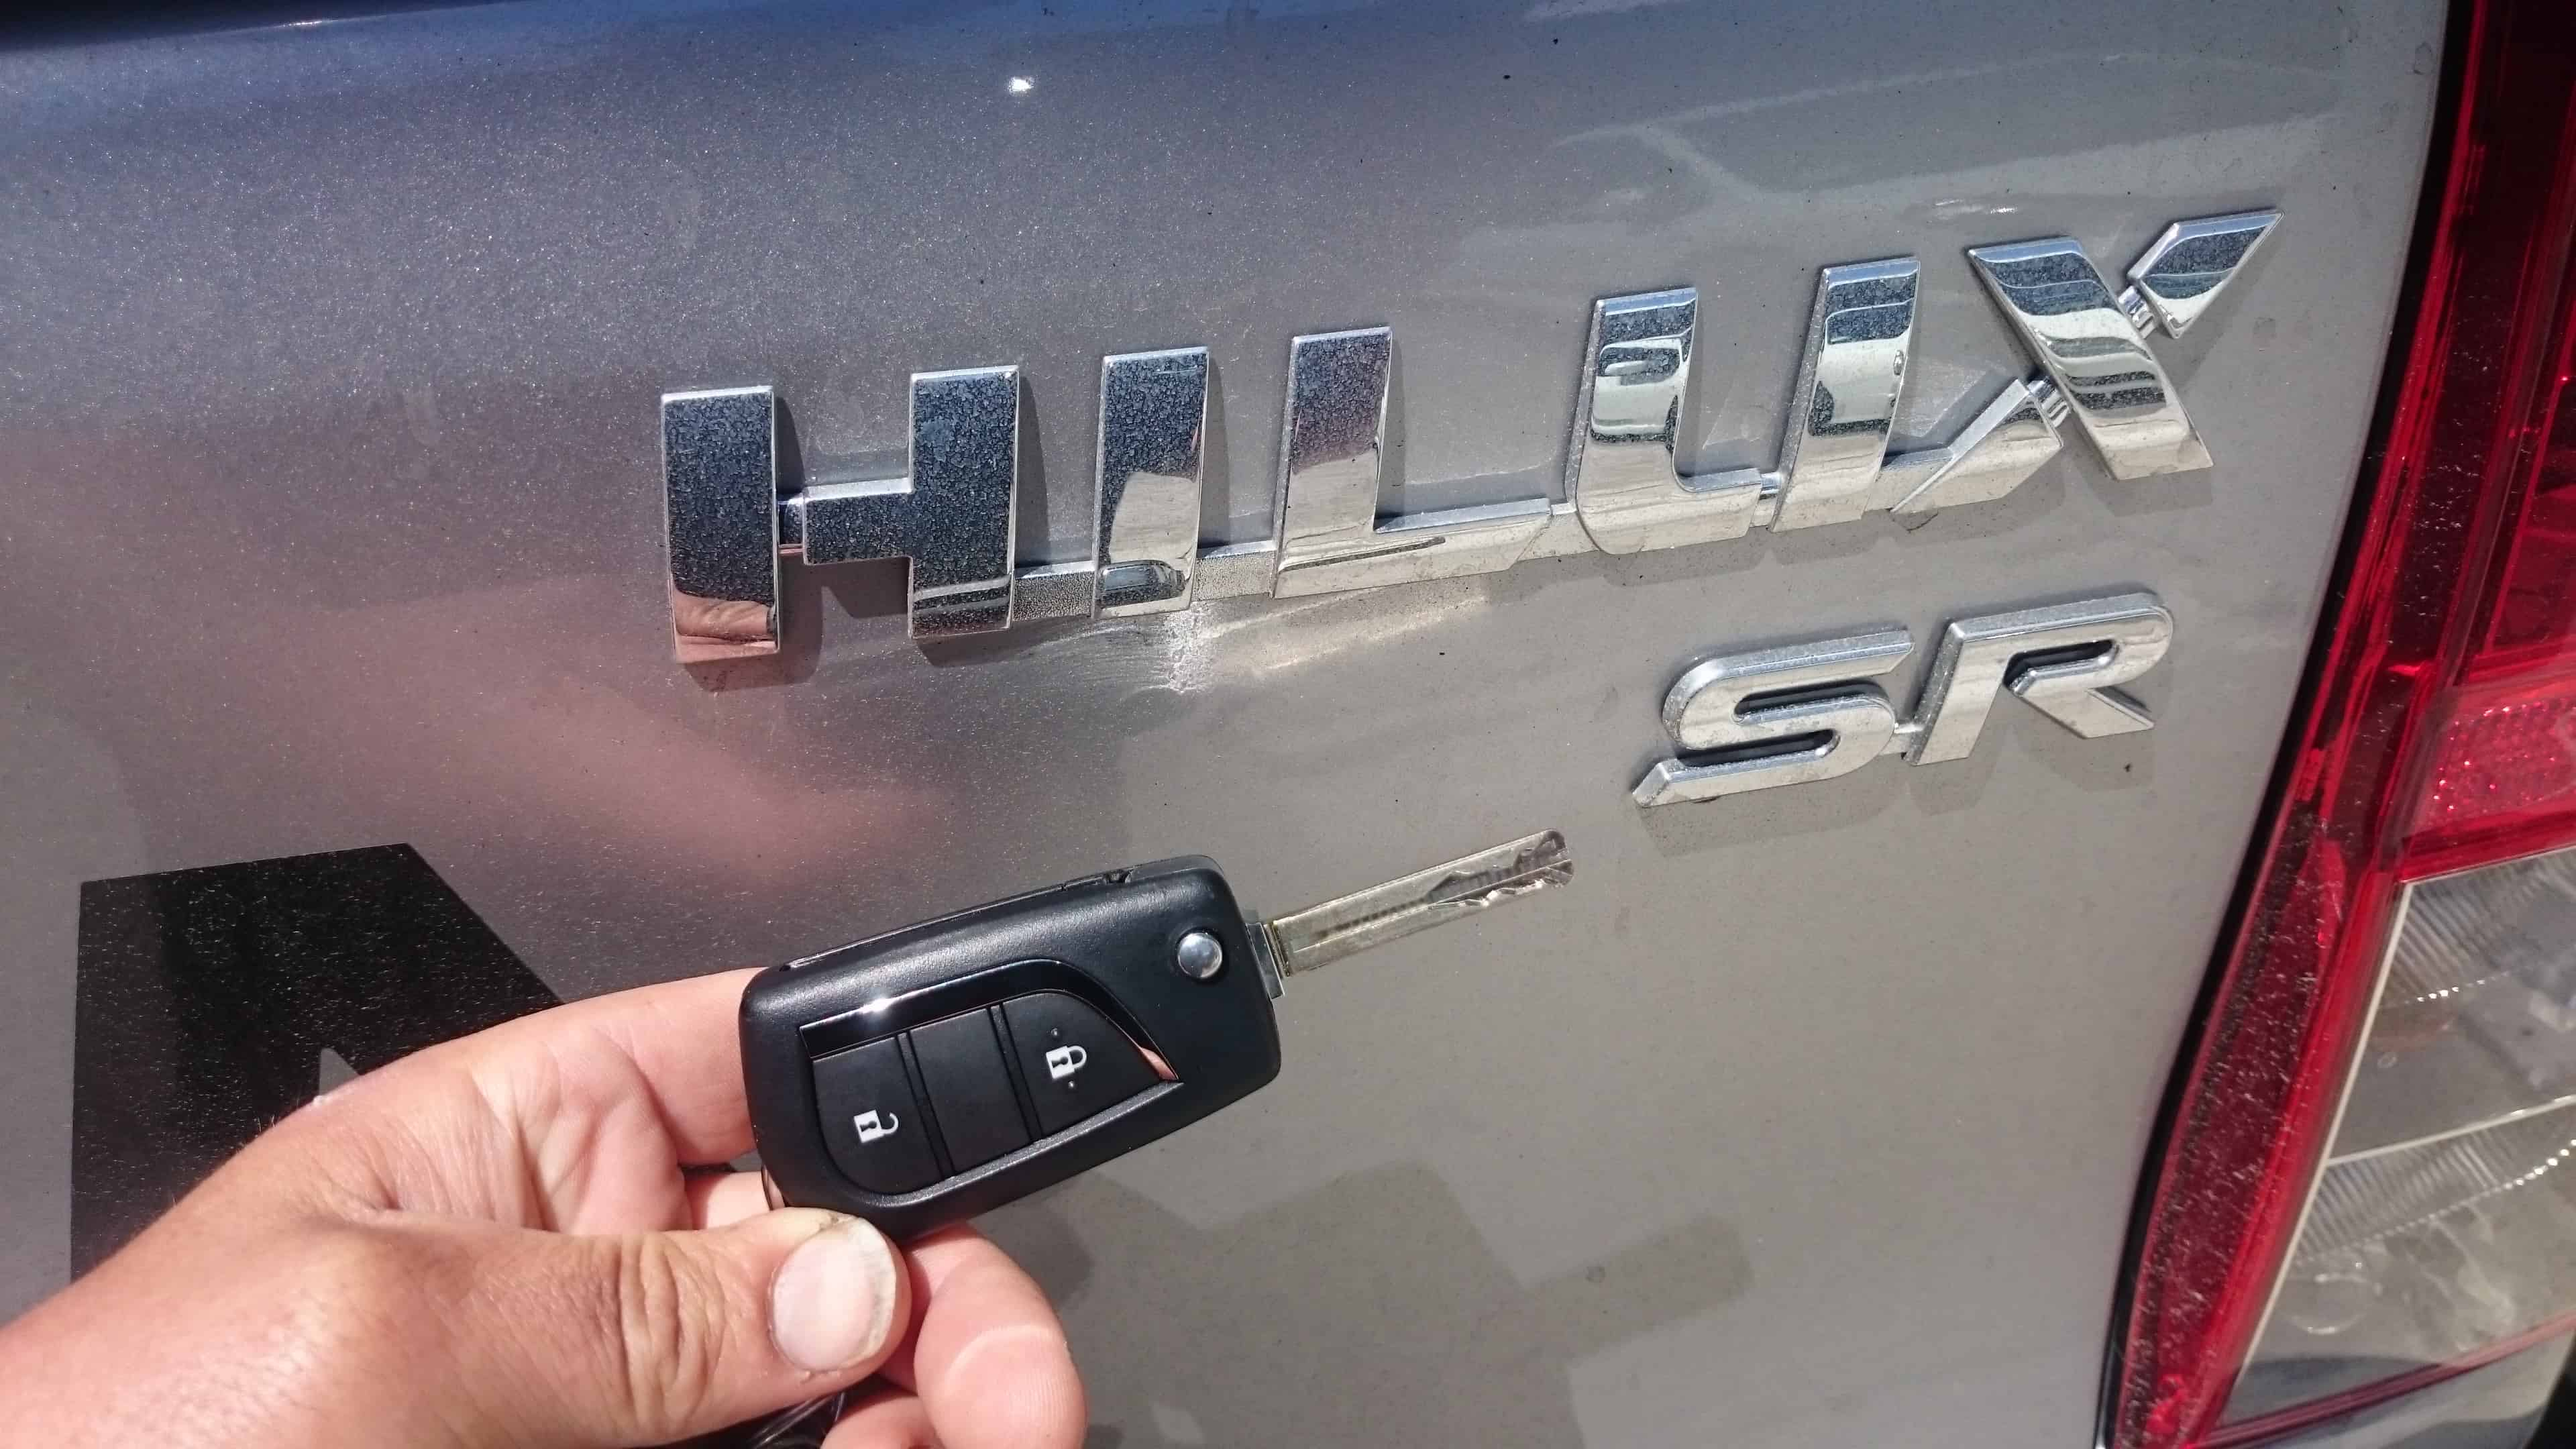 Hilux with flip open remote key